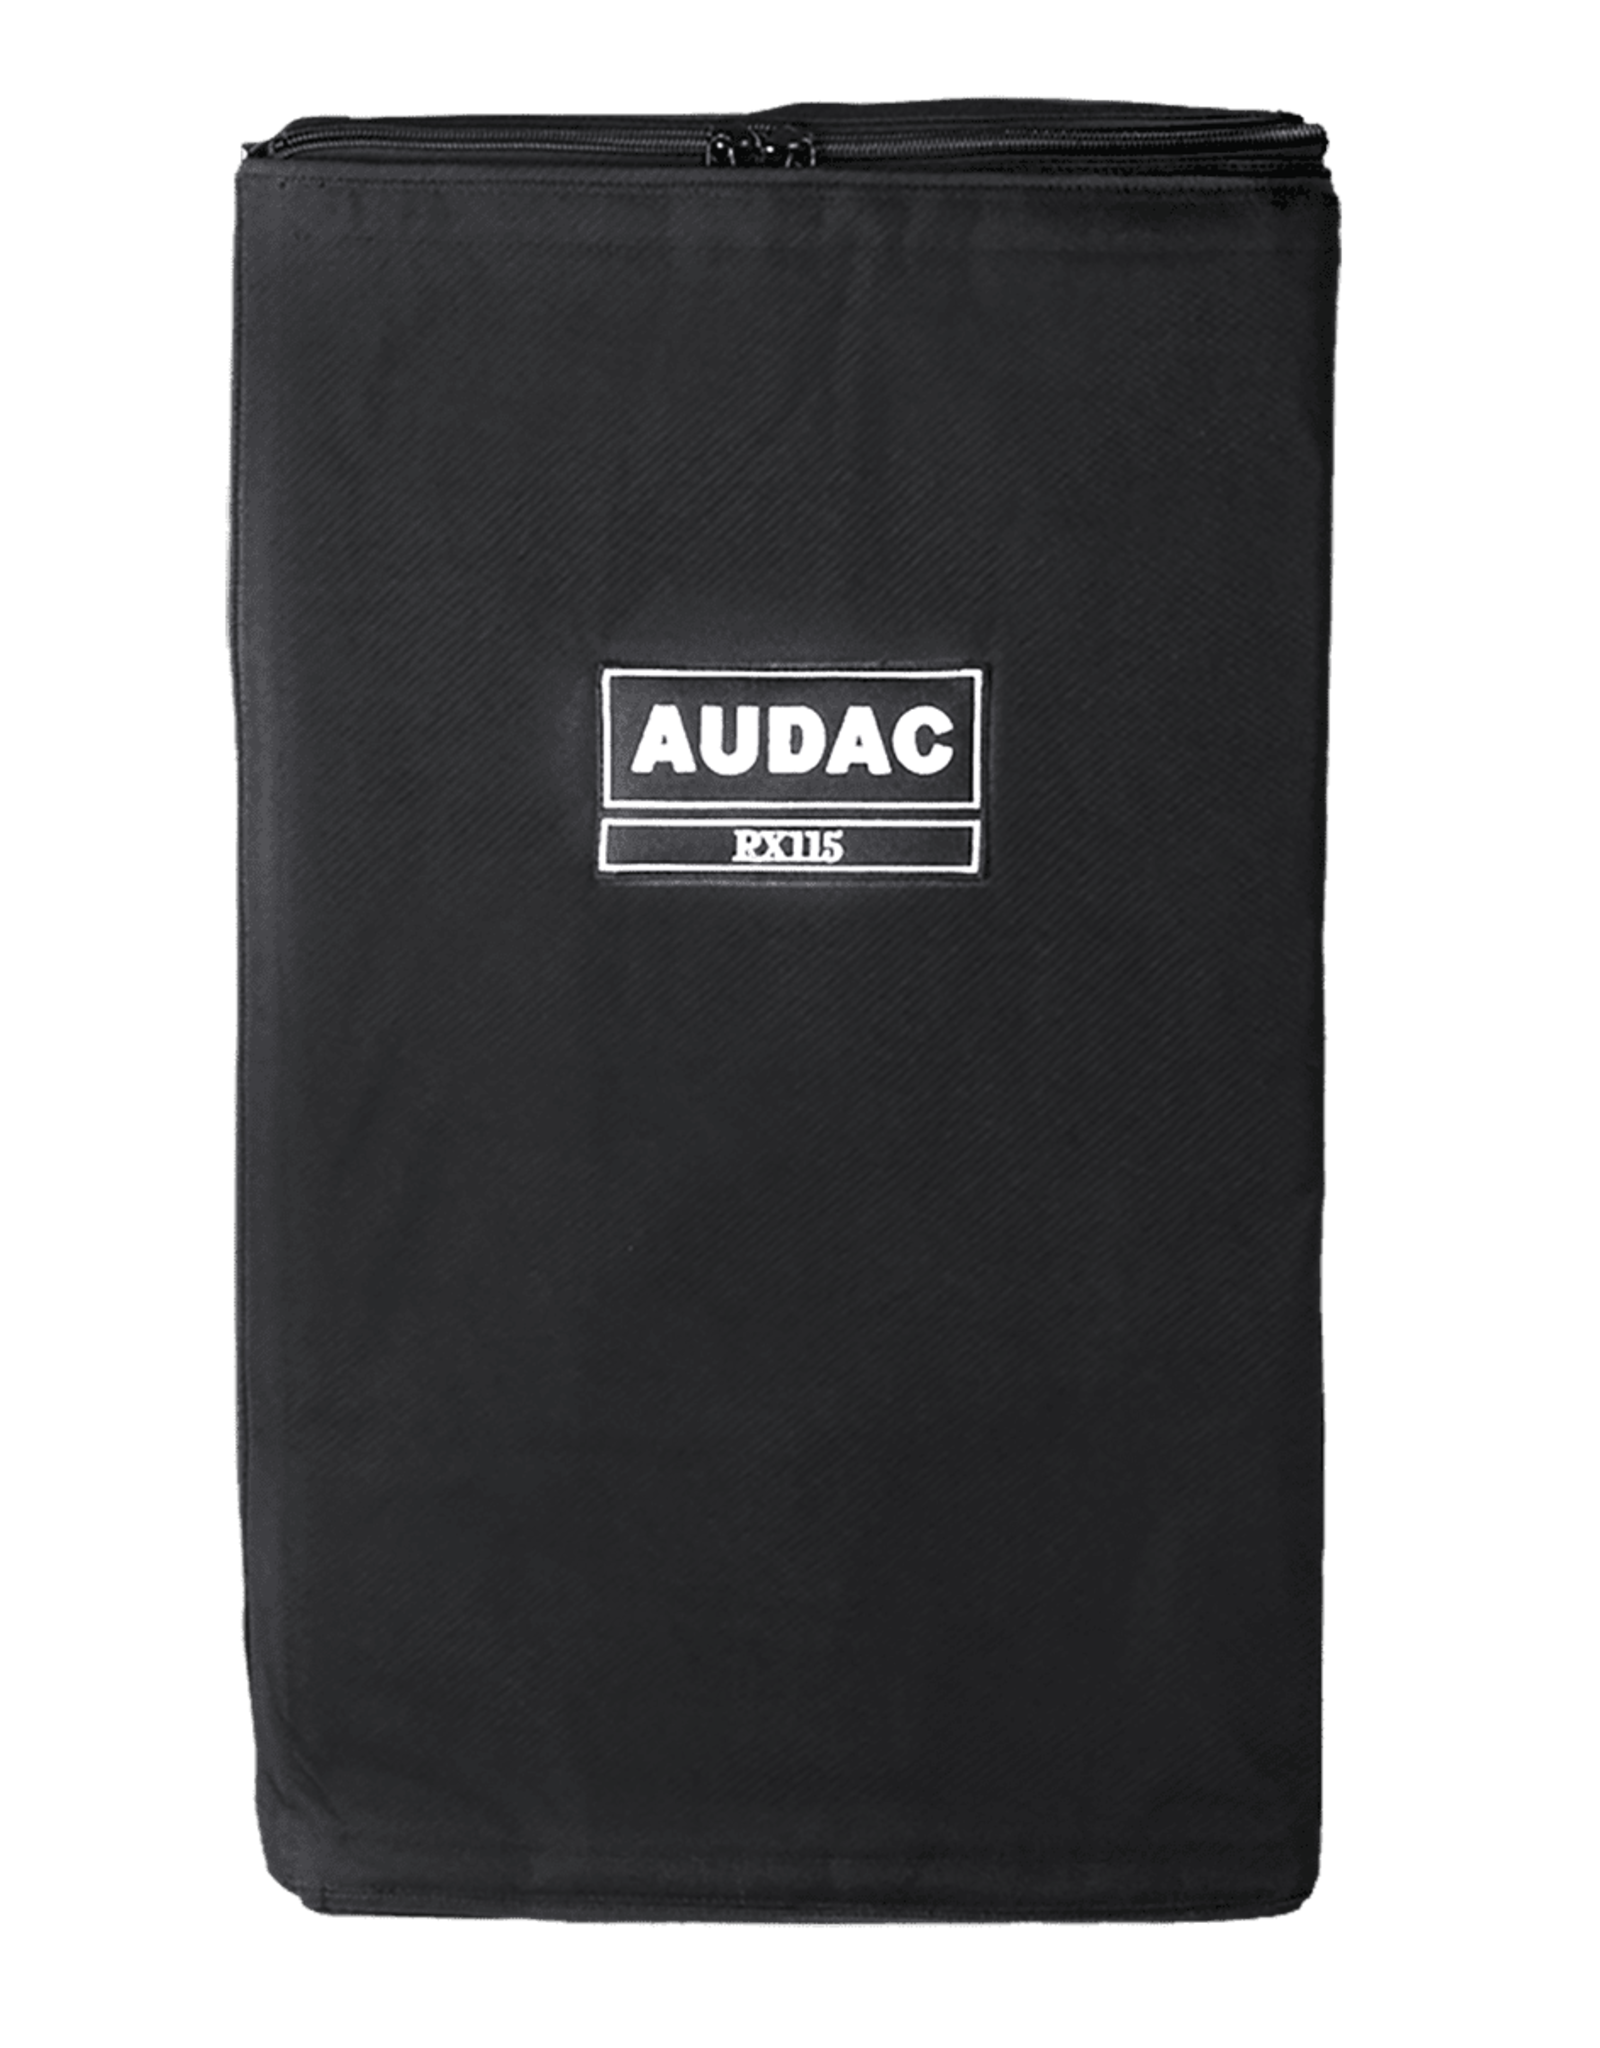 Audac Cover bag for RX115